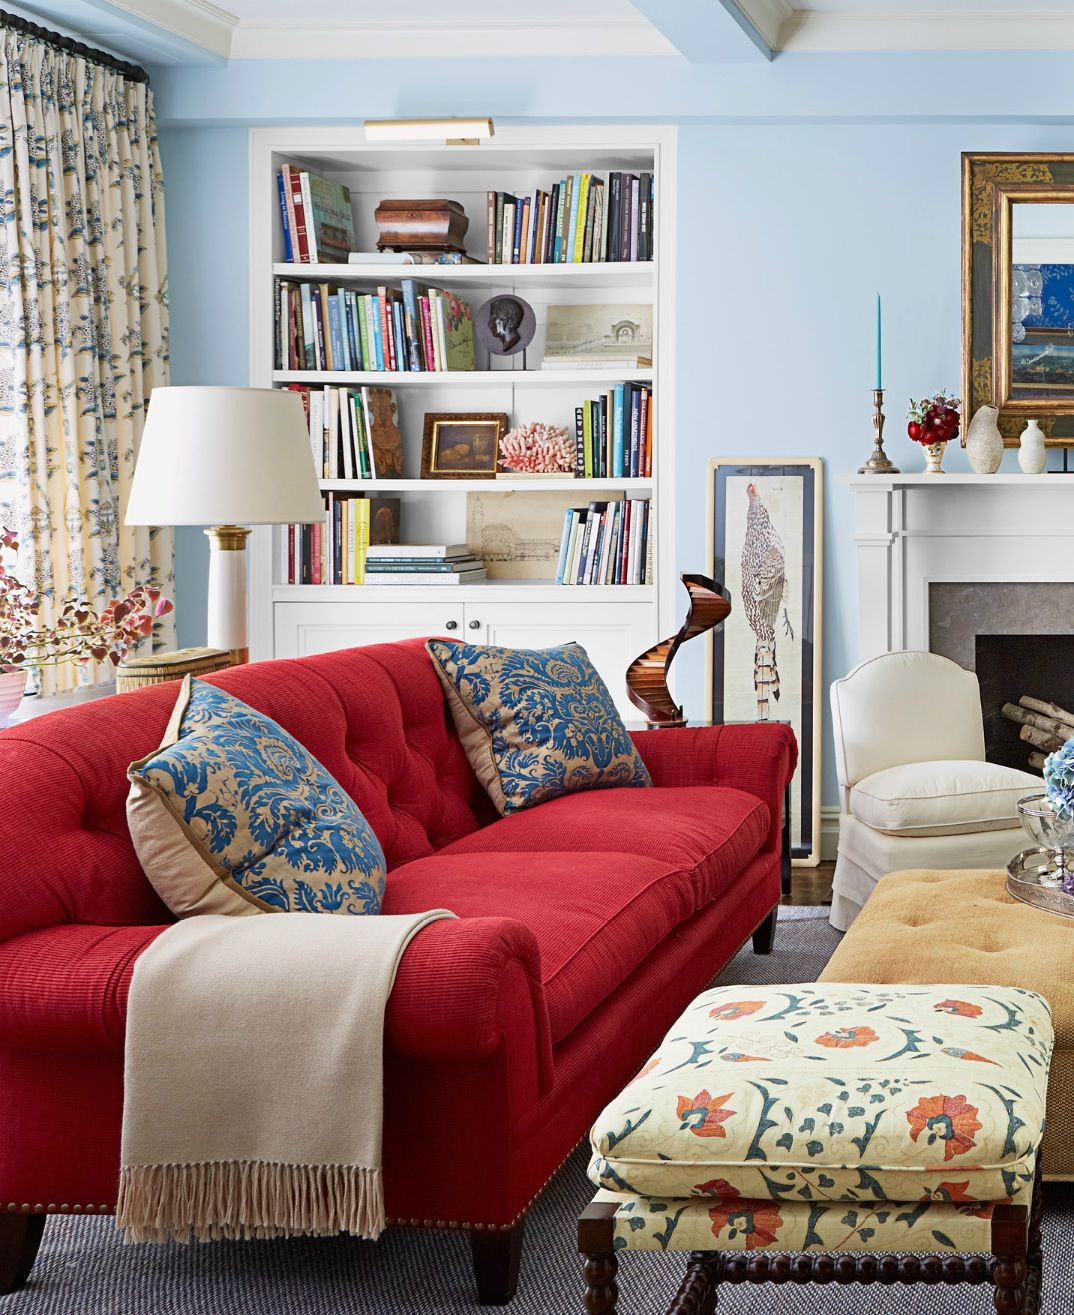 Pin By Andee Krasner On Home House Meee Red Couch Living Room